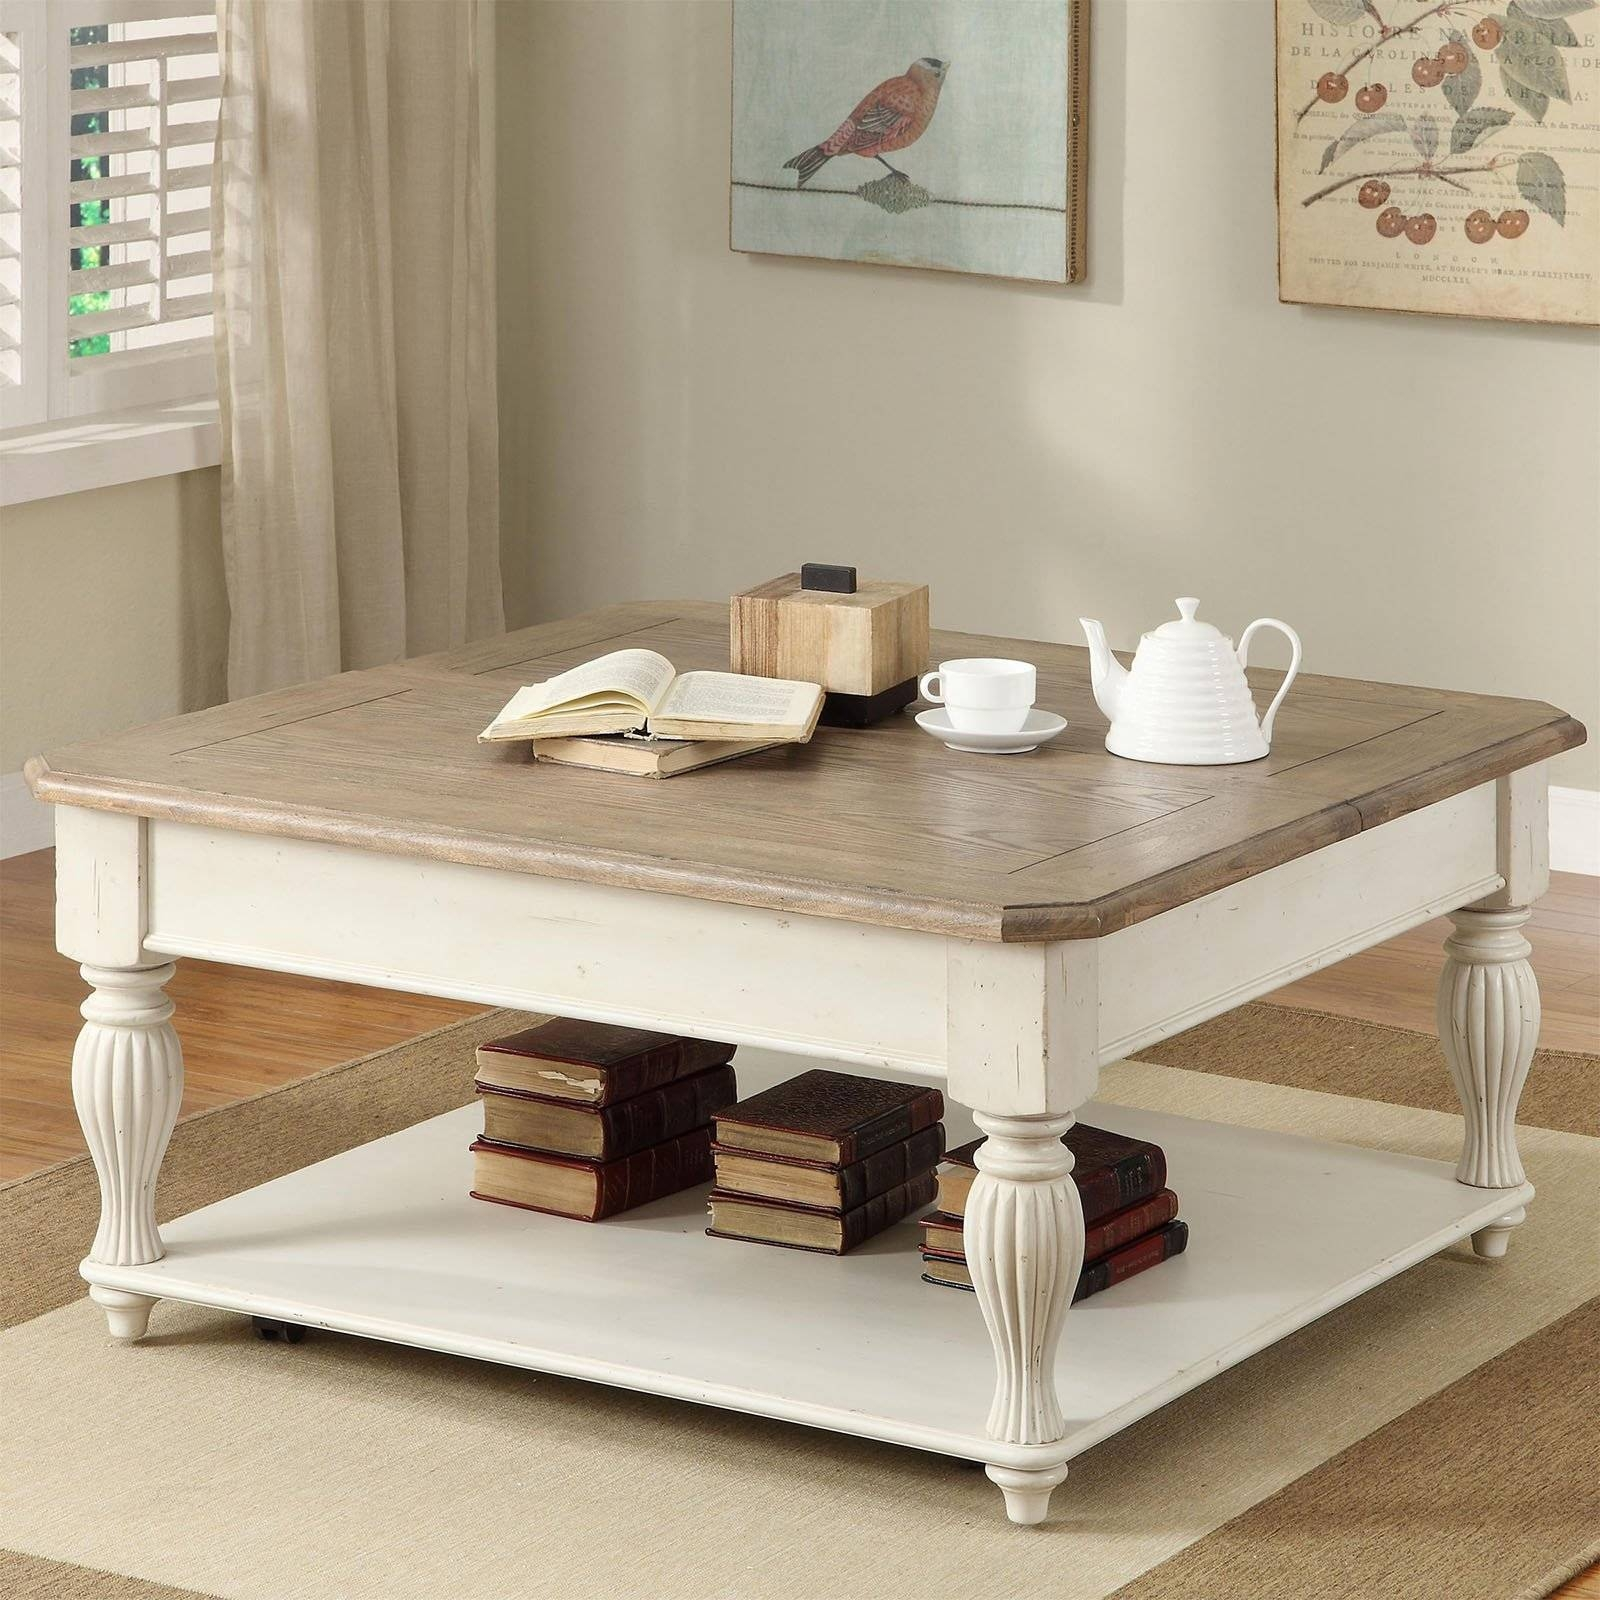 White Coffee Table Furniture | Coffee Tables Decoration With Regard To White Coffee Tables With Storage (View 22 of 30)